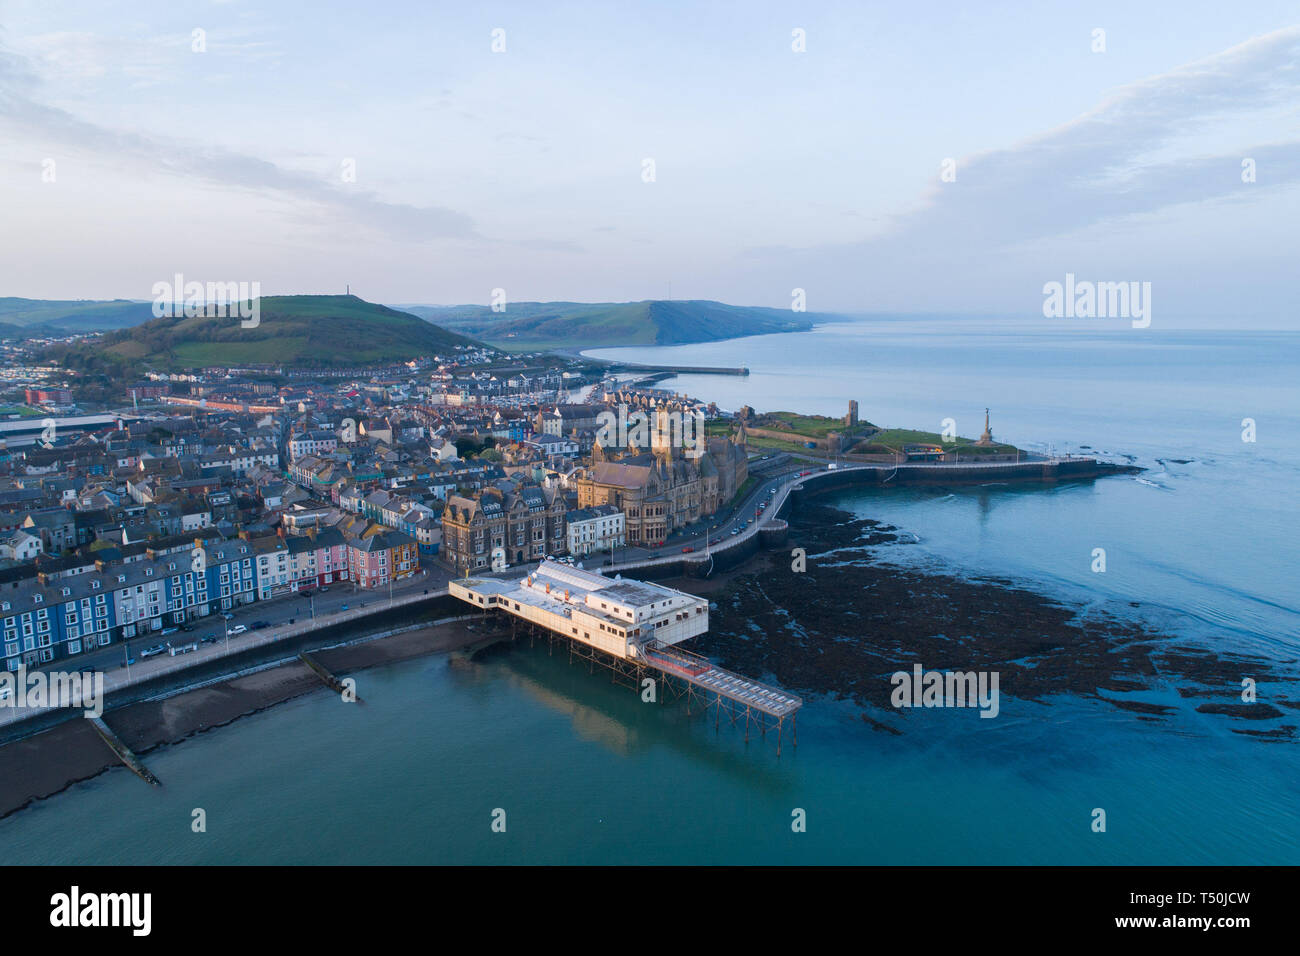 Aberystwyth Wales UK, Easter Saturday, 20 April 2019. UK Weather: Daybreak over the seaside and university town of Aberystwyth on the west wales coast, at the start of Easter Saturday 2019. The weather is again set to be hot and sunny, with temperatures in the low 20's Celsius (low 70's Fahrenheit). Credit: keith morris/Alamy Live News - Stock Image